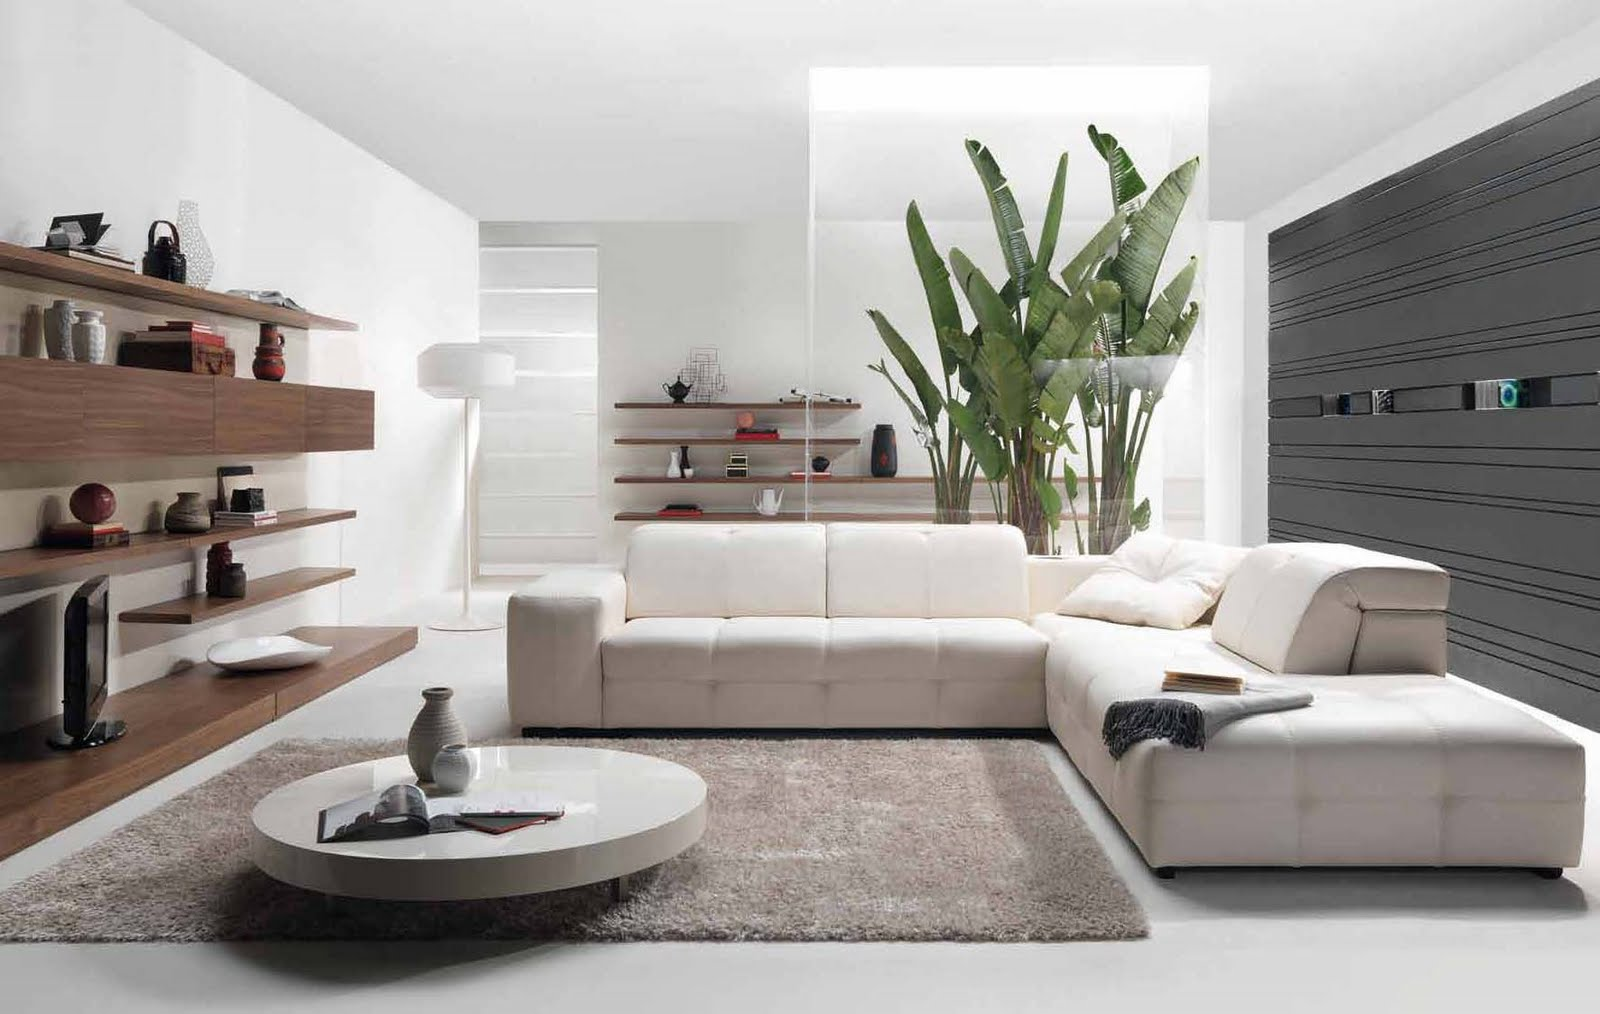 Modern home interior furniture designs diy ideas Interior design ideas living room small